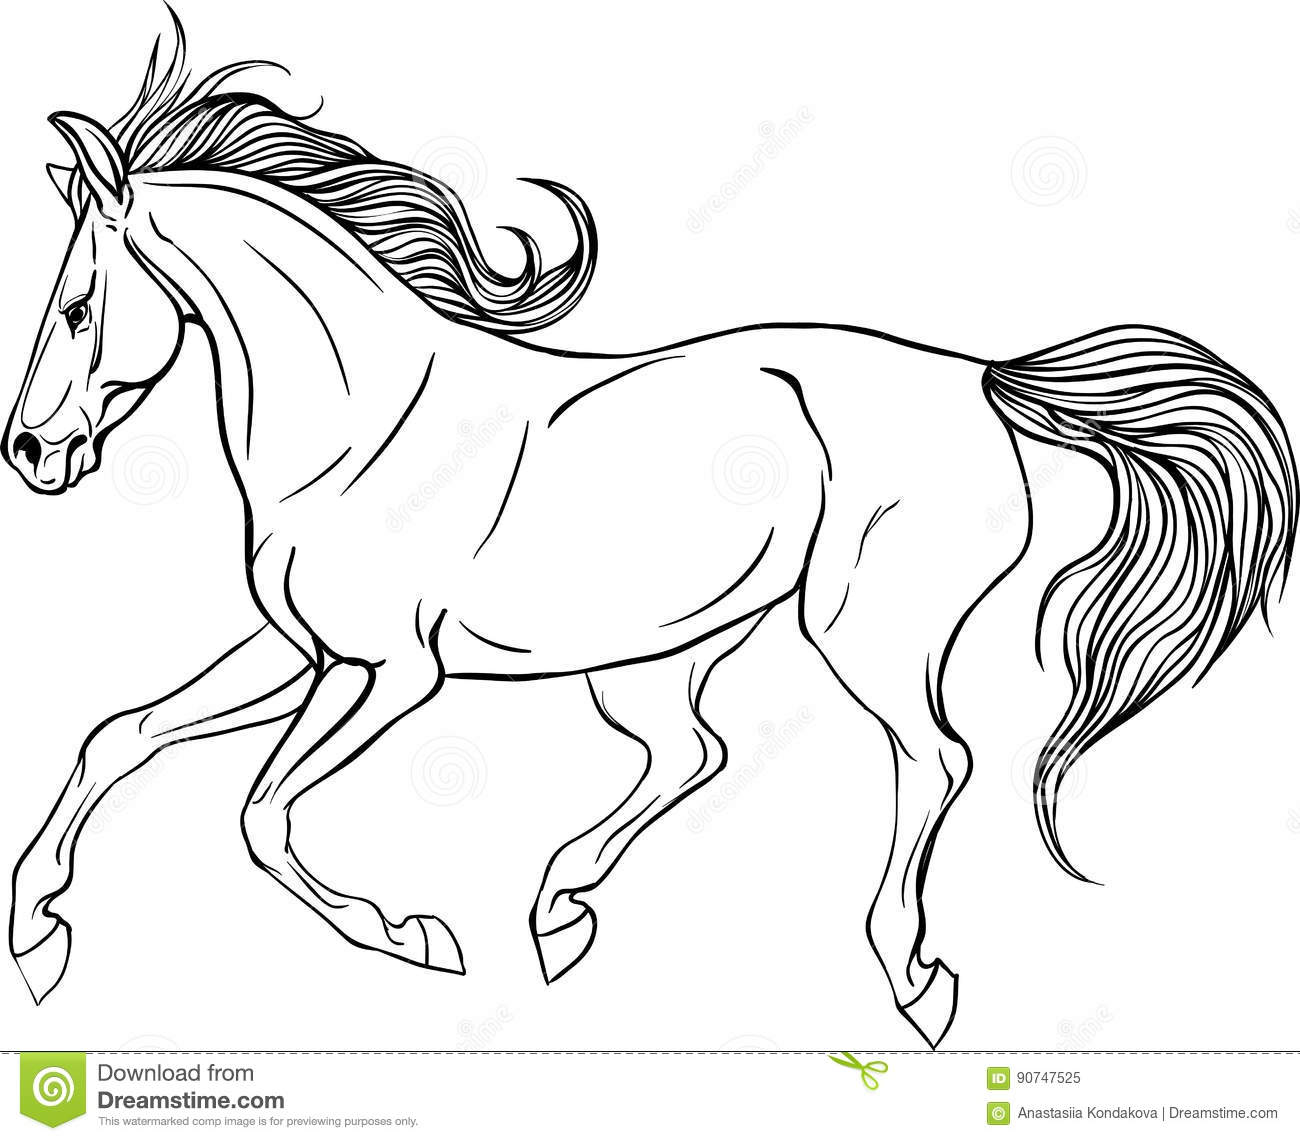 Adult coloring page horse. stock vector. Illustration of nature ...